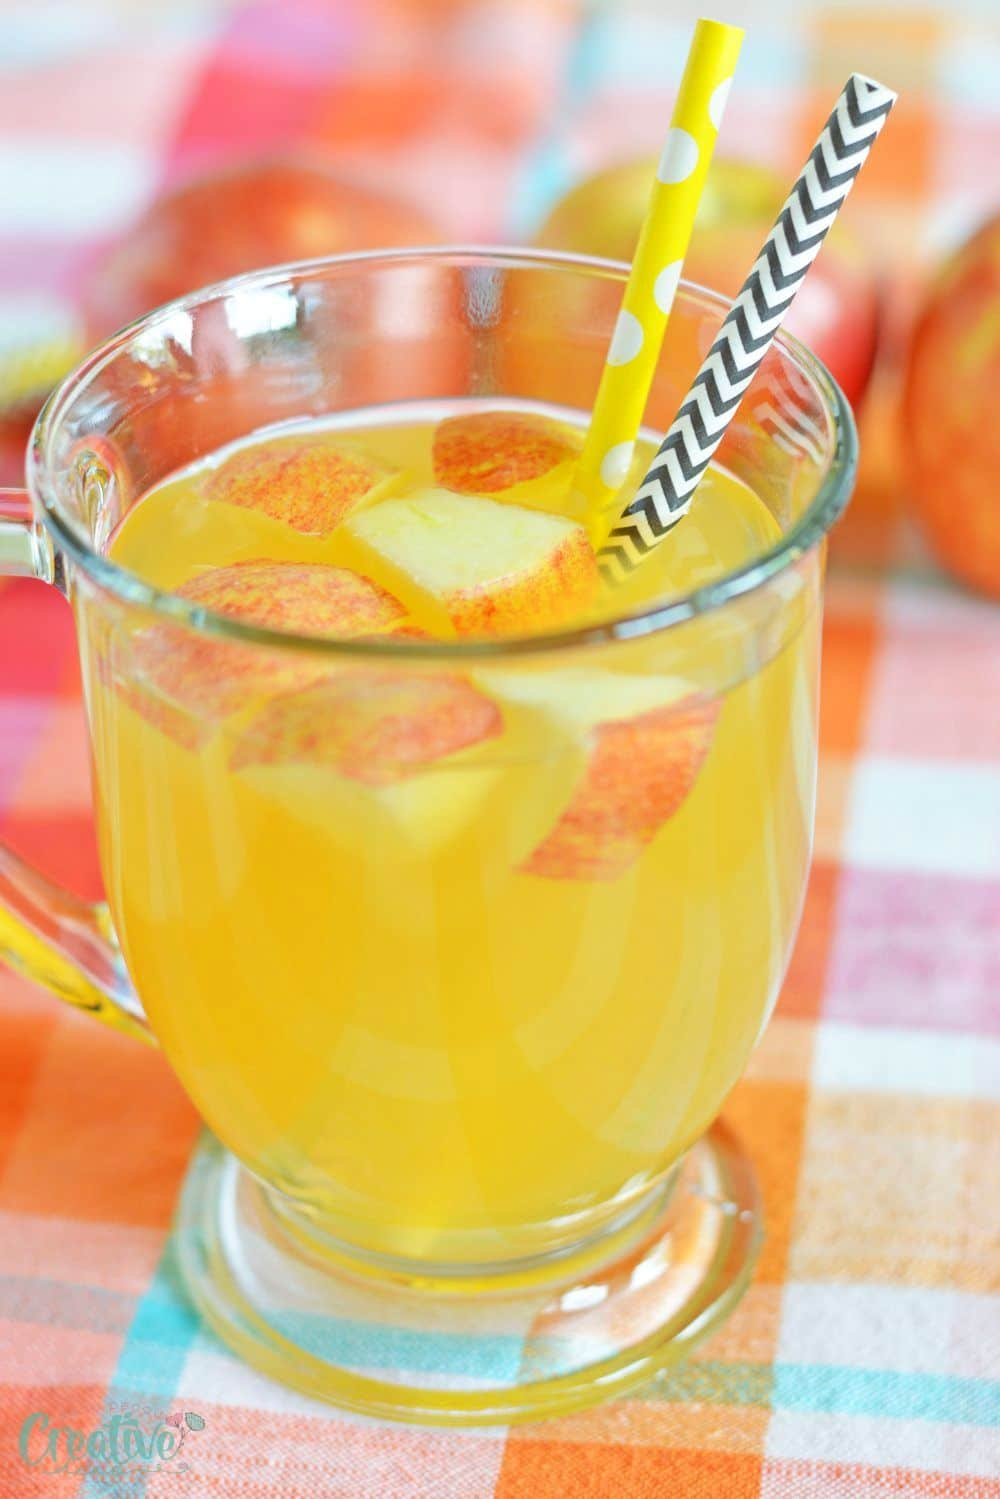 Image of alcoholic apple cider in a mug, decorated with apples and paper straws